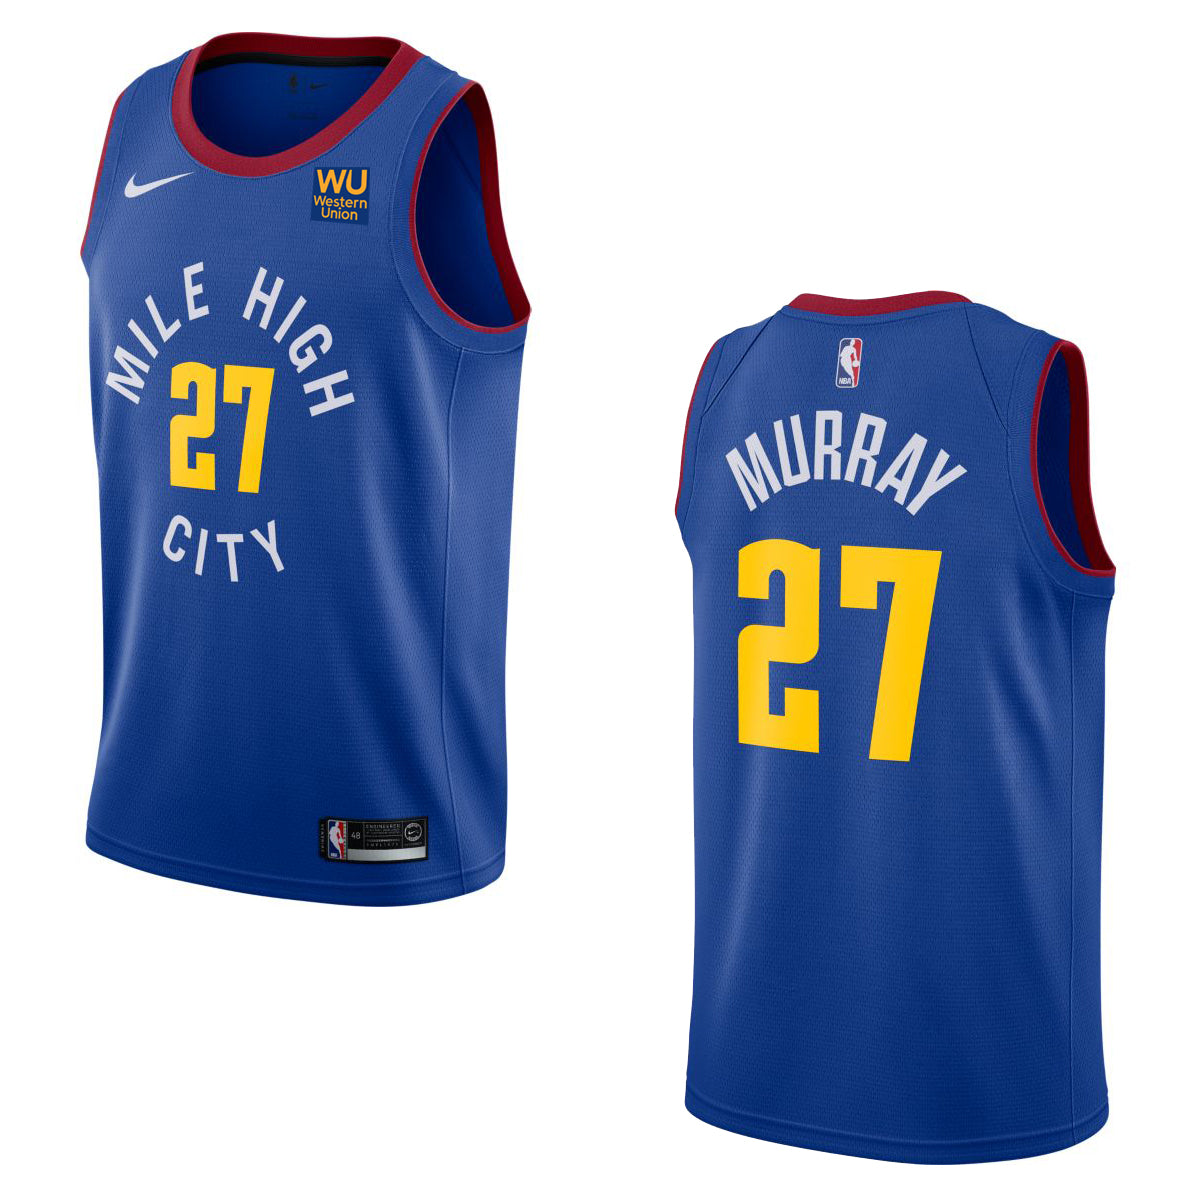 reputable site bac9b 33c98 2019-20 Nike Swingman Statement Jersey